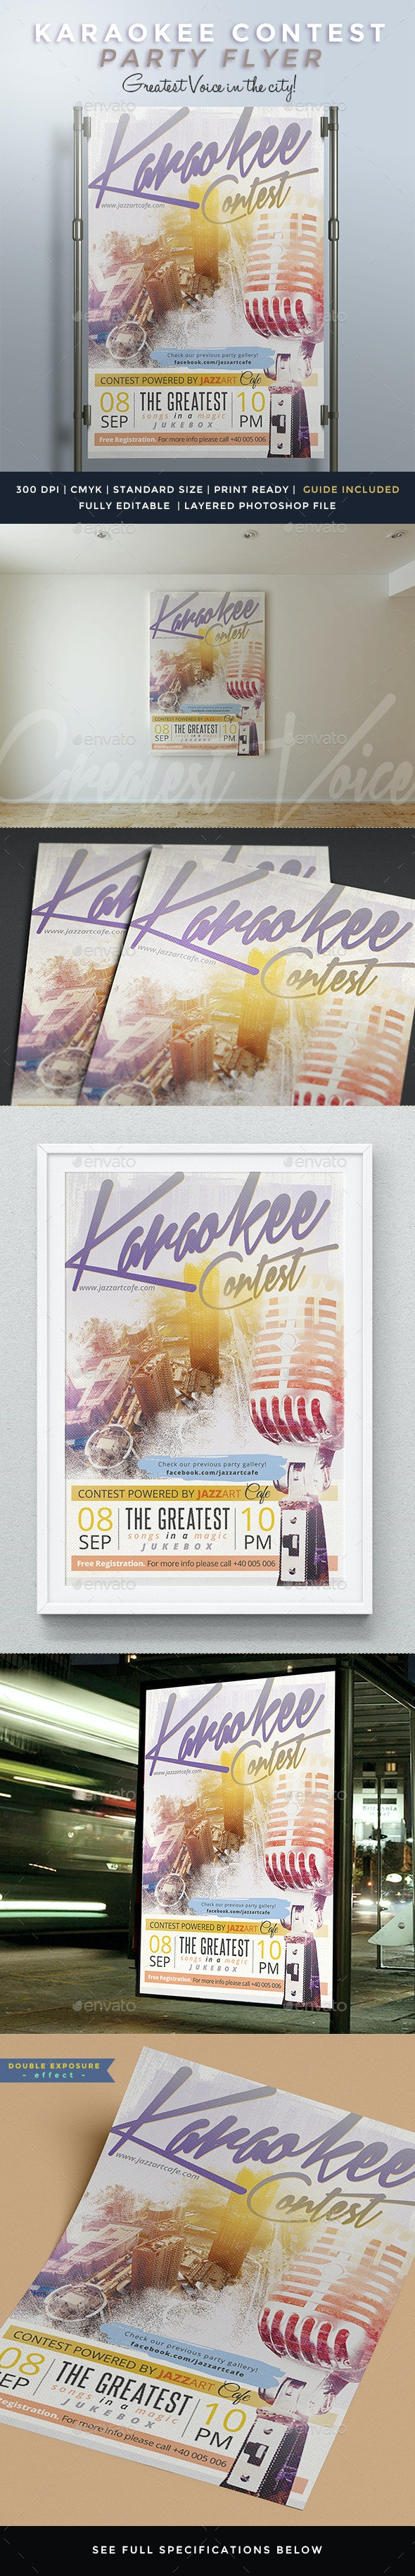 Karaokee Contest Party Flyer II - Clubs & Parties Events